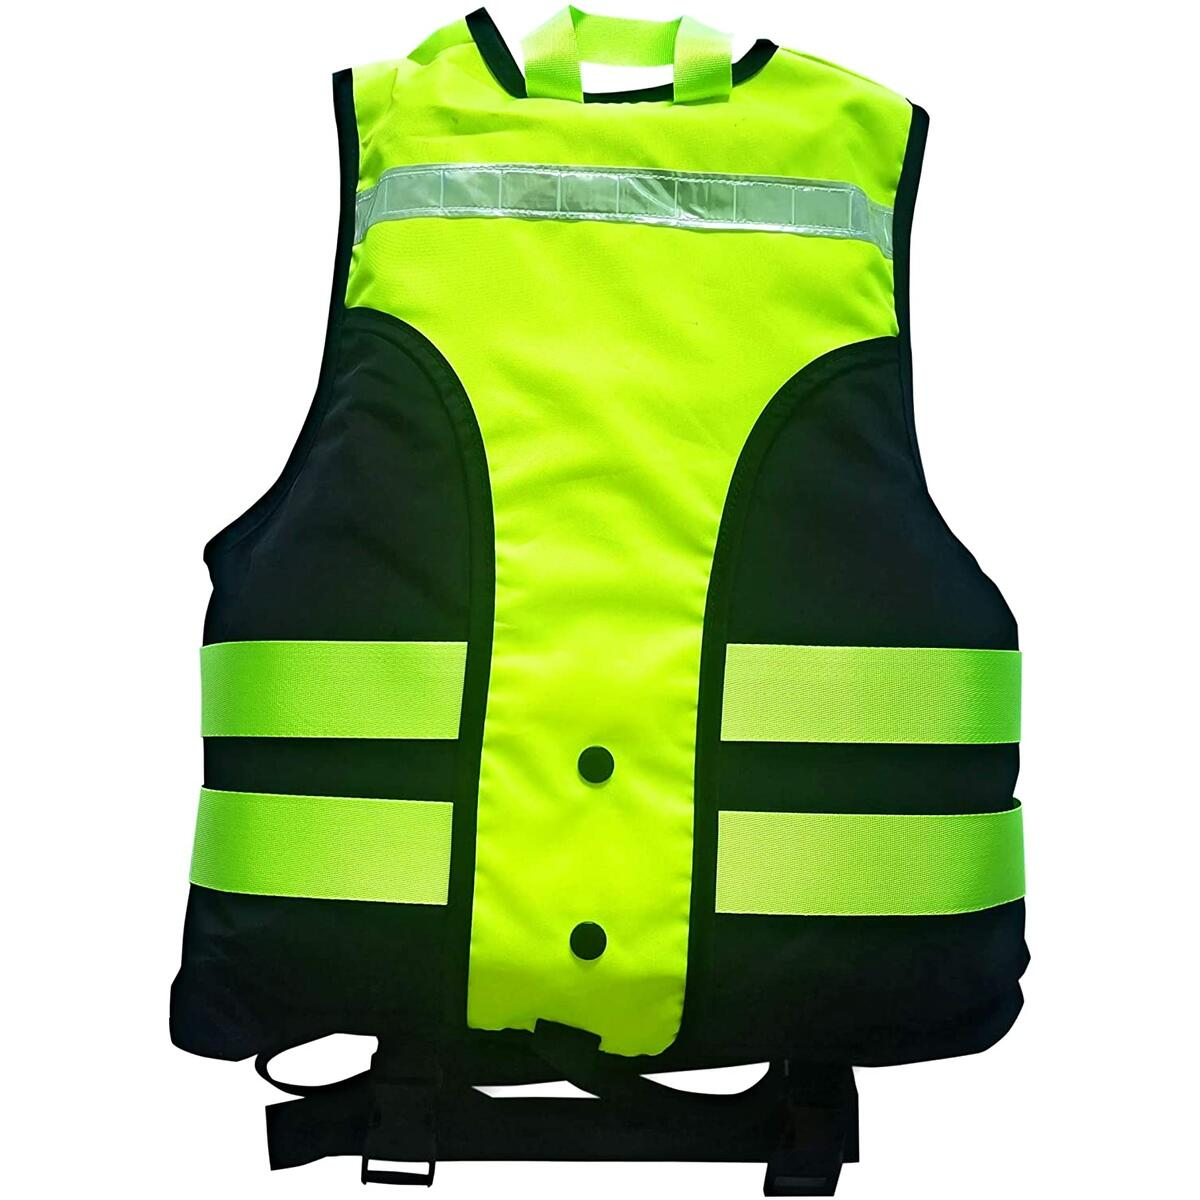 Aquatic Child - High Visibility Children Safety Vest - Premium Unisex Child Life Jacket W/EPE Foam - Water Sports Swimming Vest with Safety Buckles for Kids 25-50 lbs (Yellow)